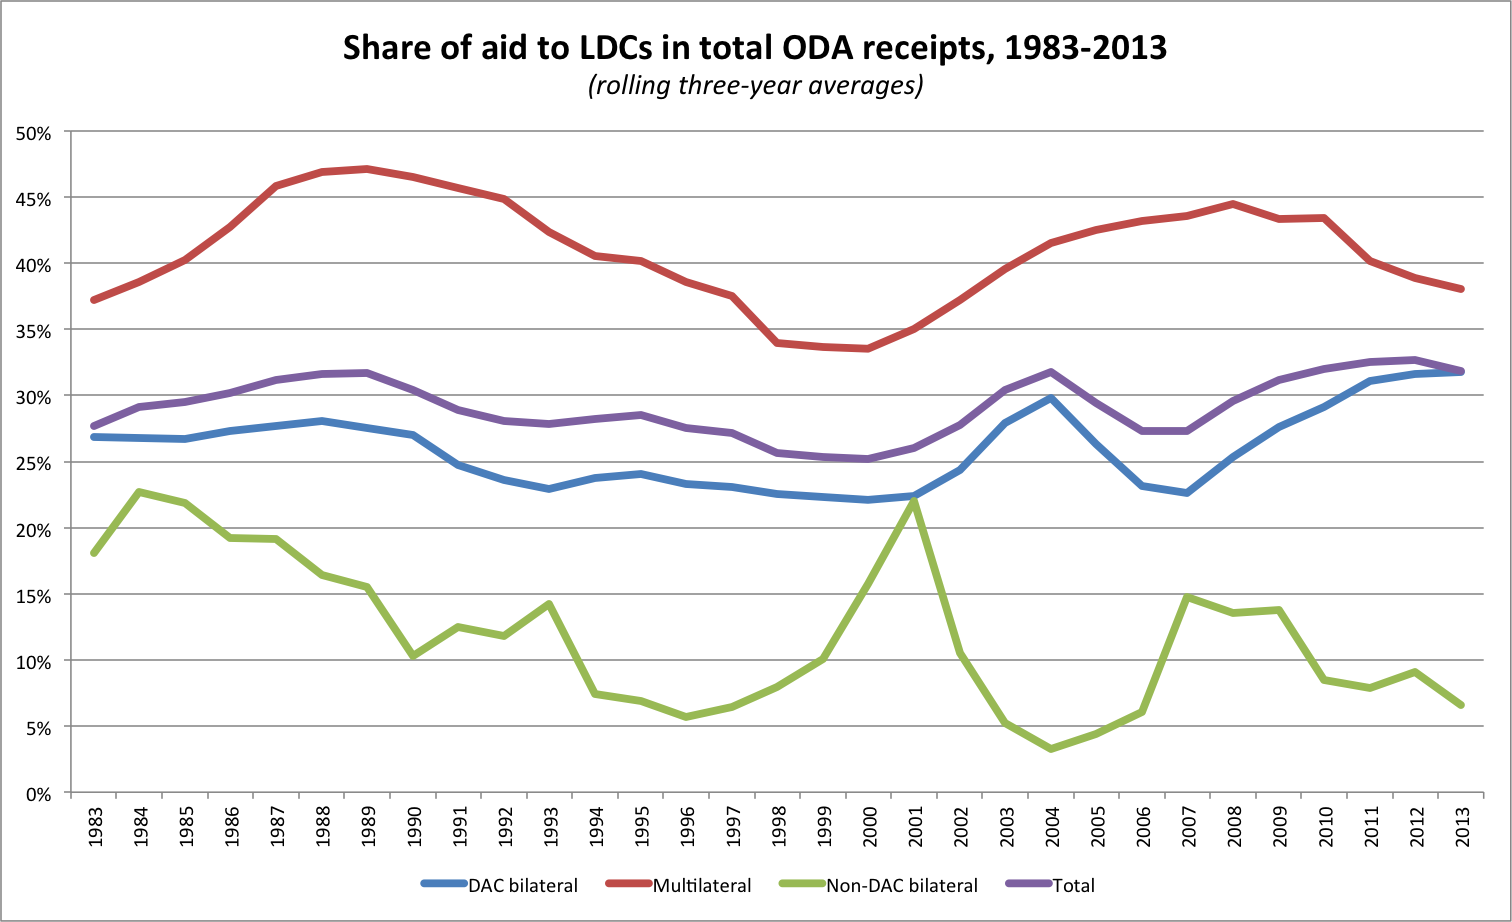 Share of aid to LDCs in total ODA receipts, 1983-2013